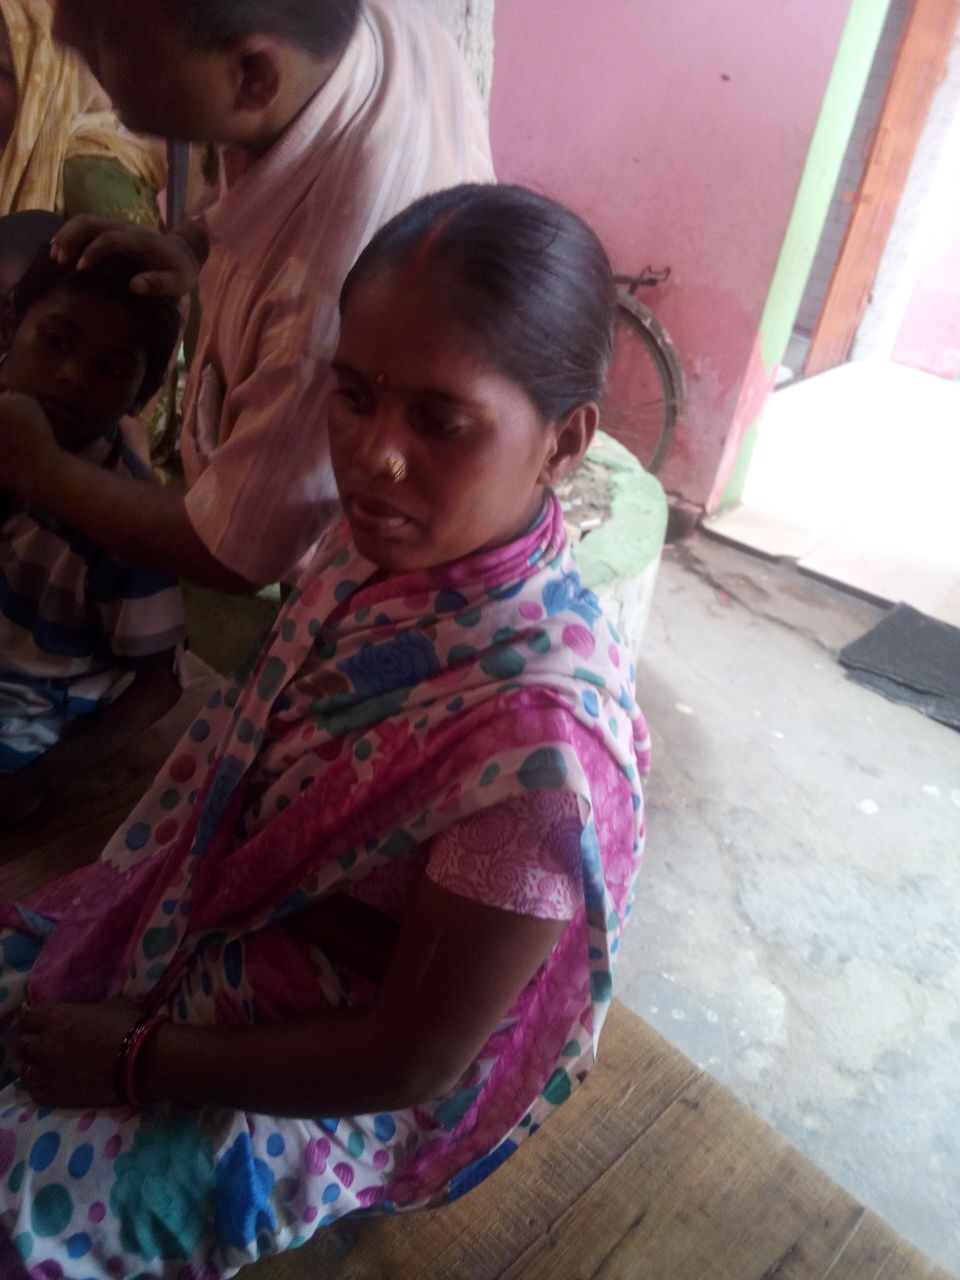 Meet Padma. She is 32 years old. She tells us that she suffers from depression.